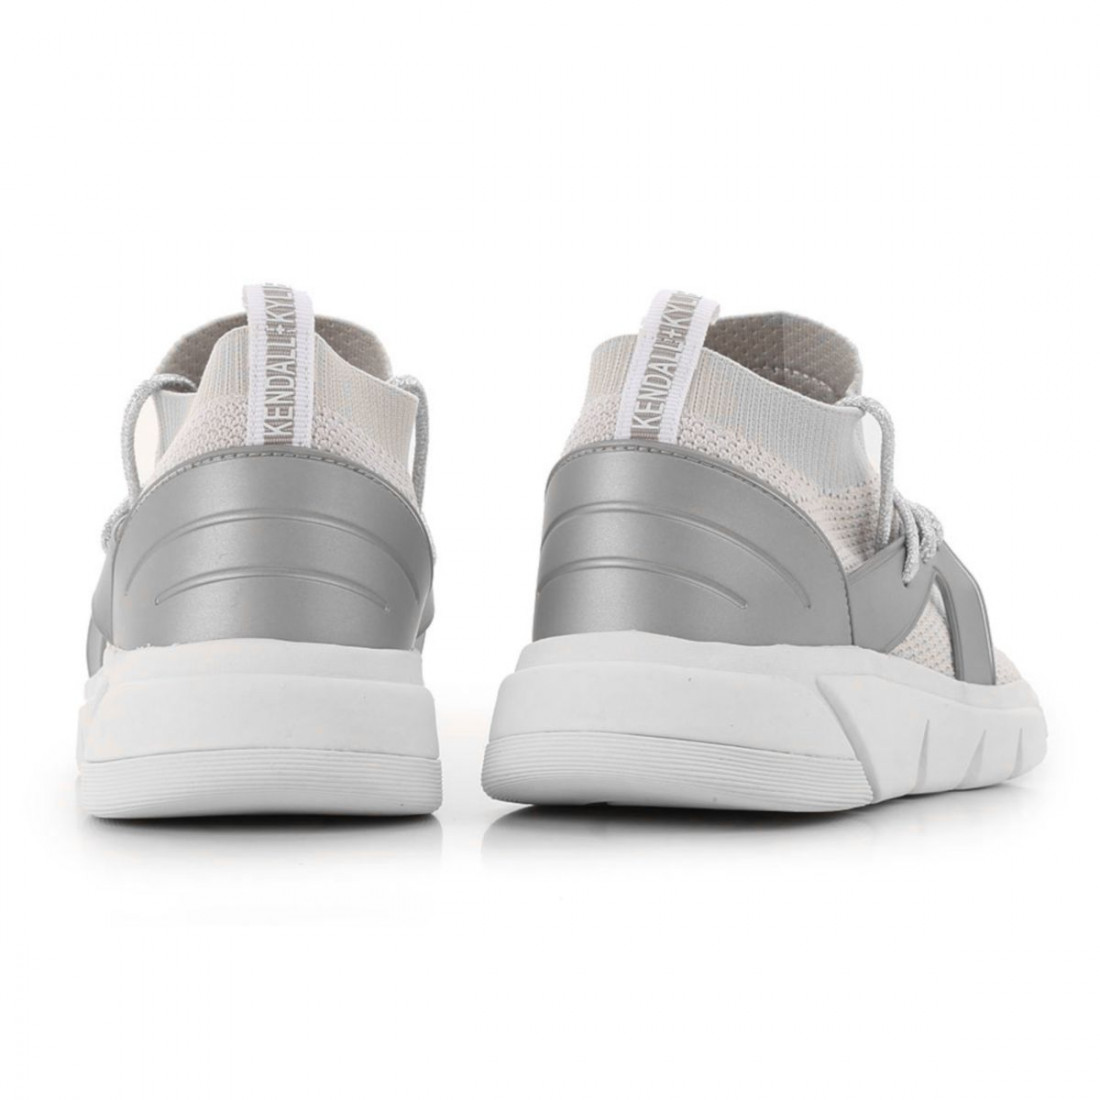 sneakers donna kendall kylie kkconquergrmfb 4873